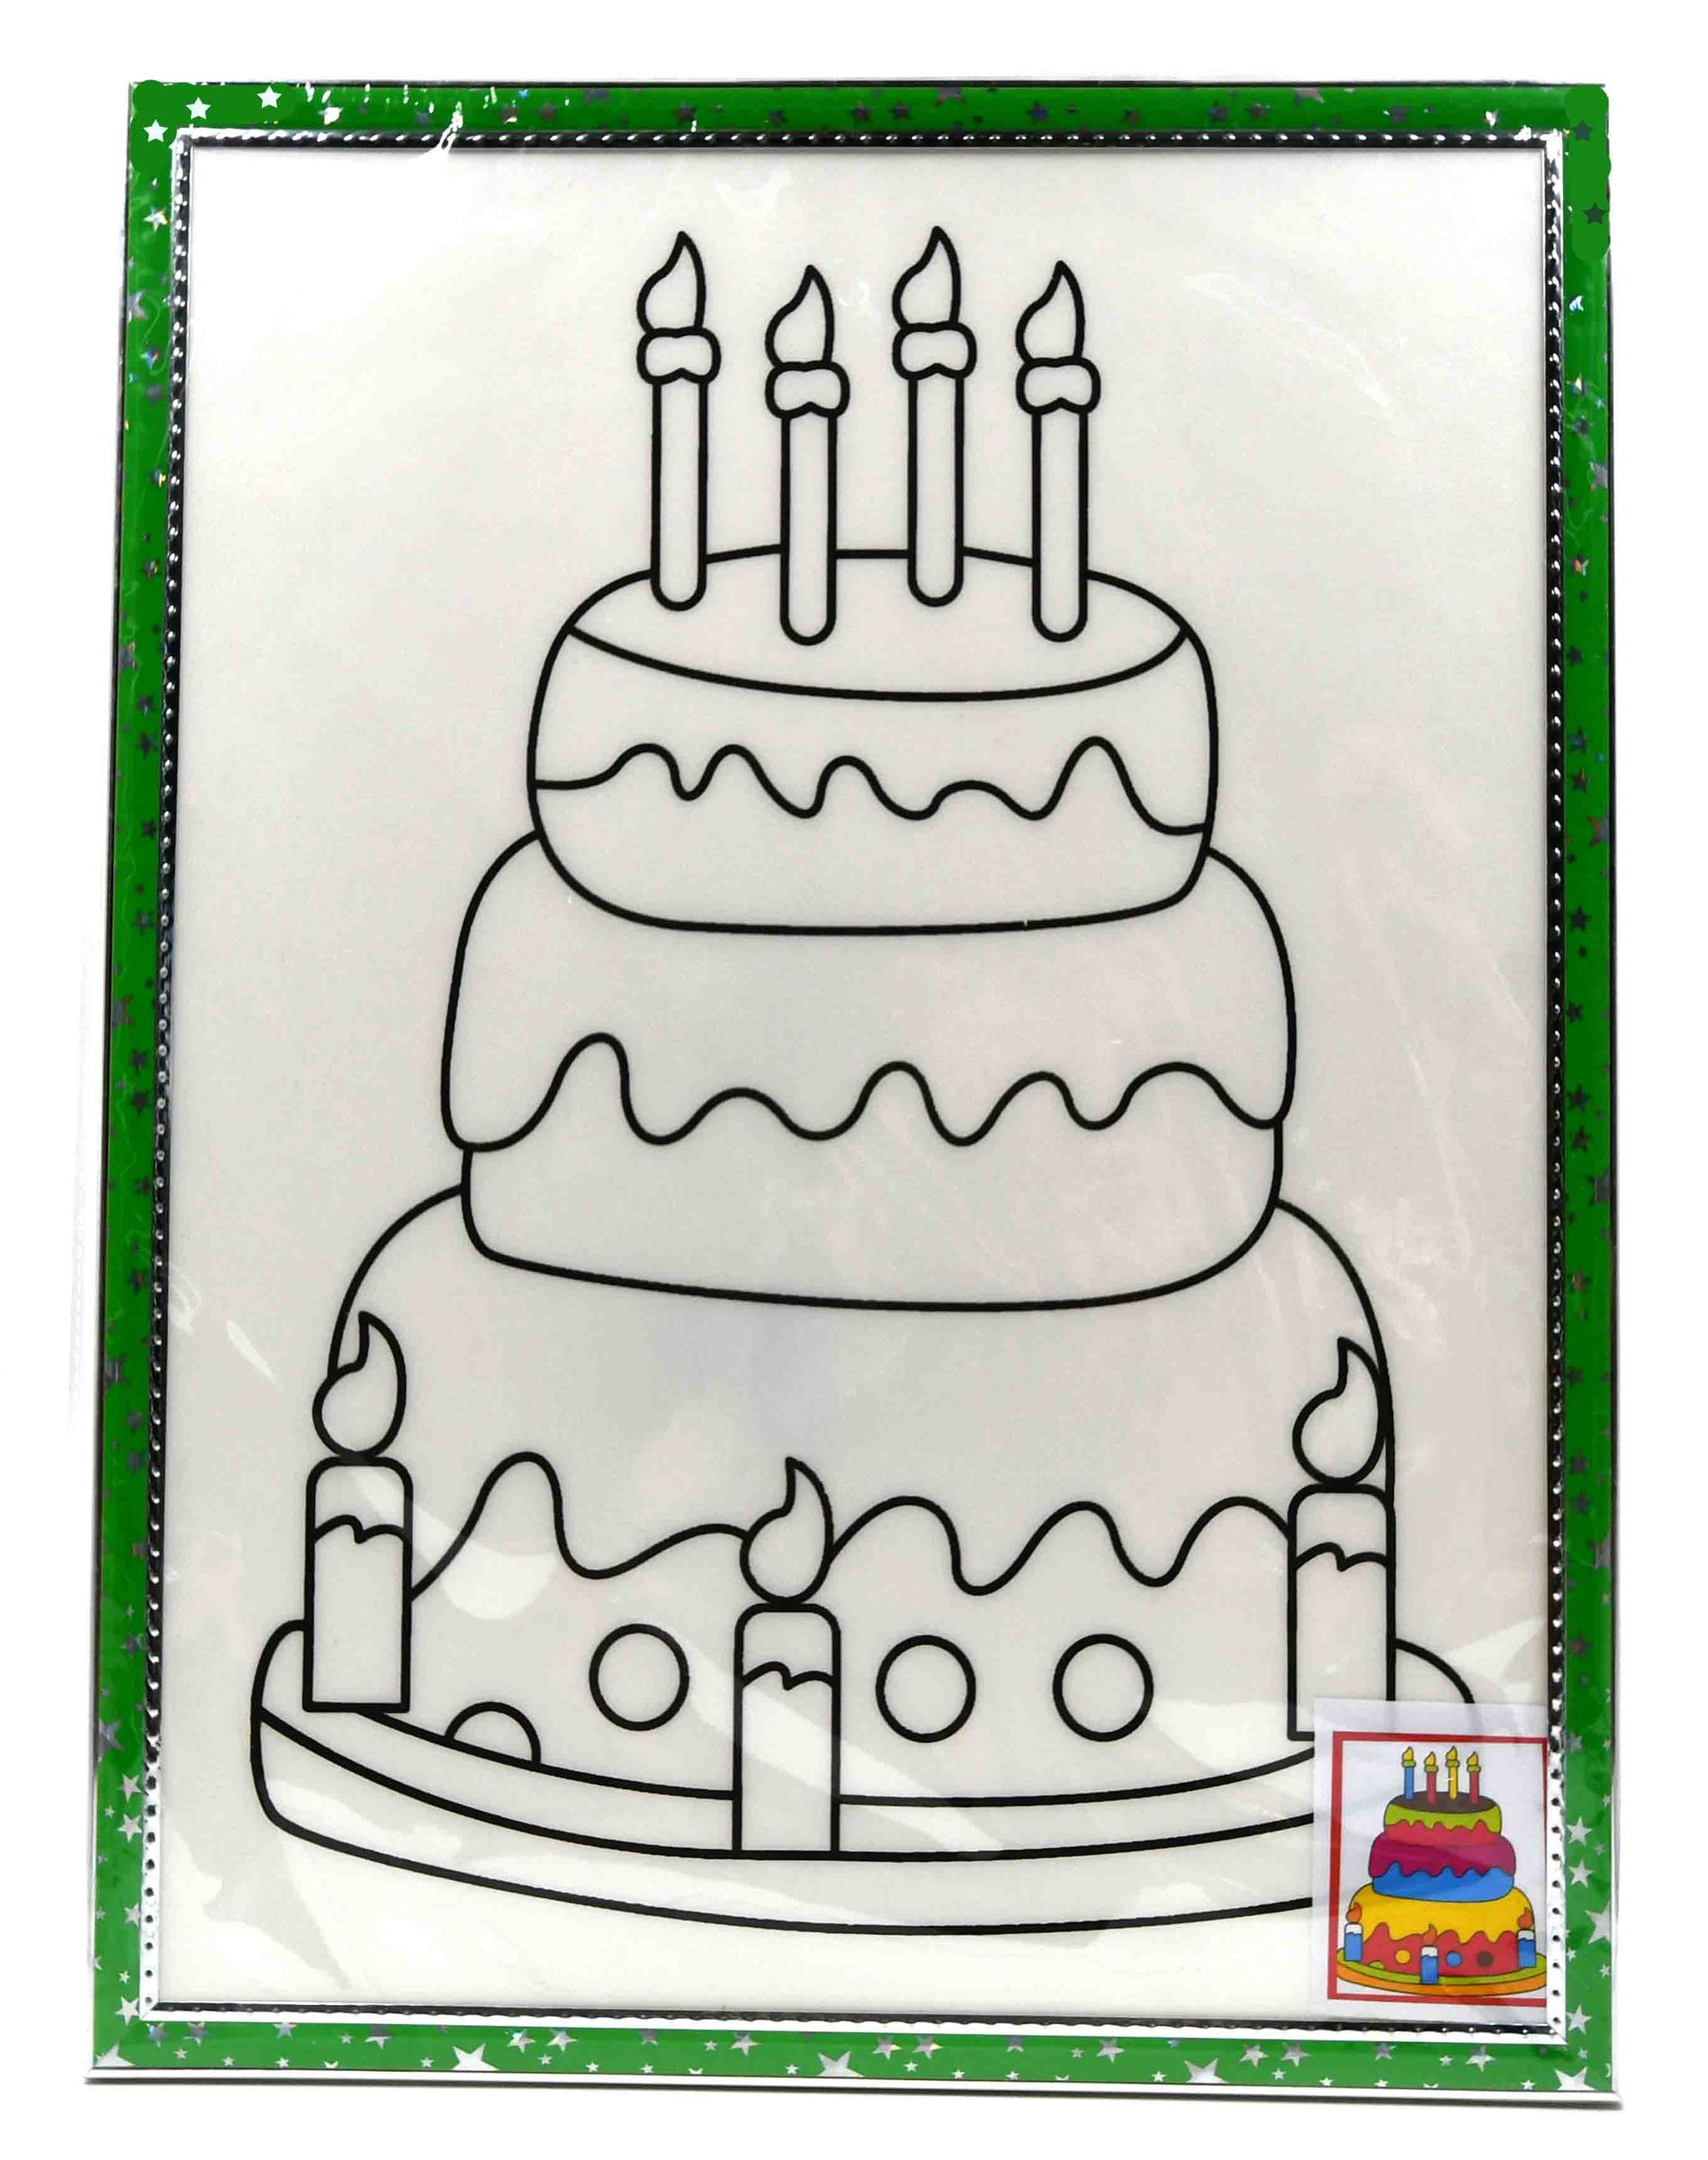 Styrofoam Frame Craft 30x40 - Birthday Cake.jpg